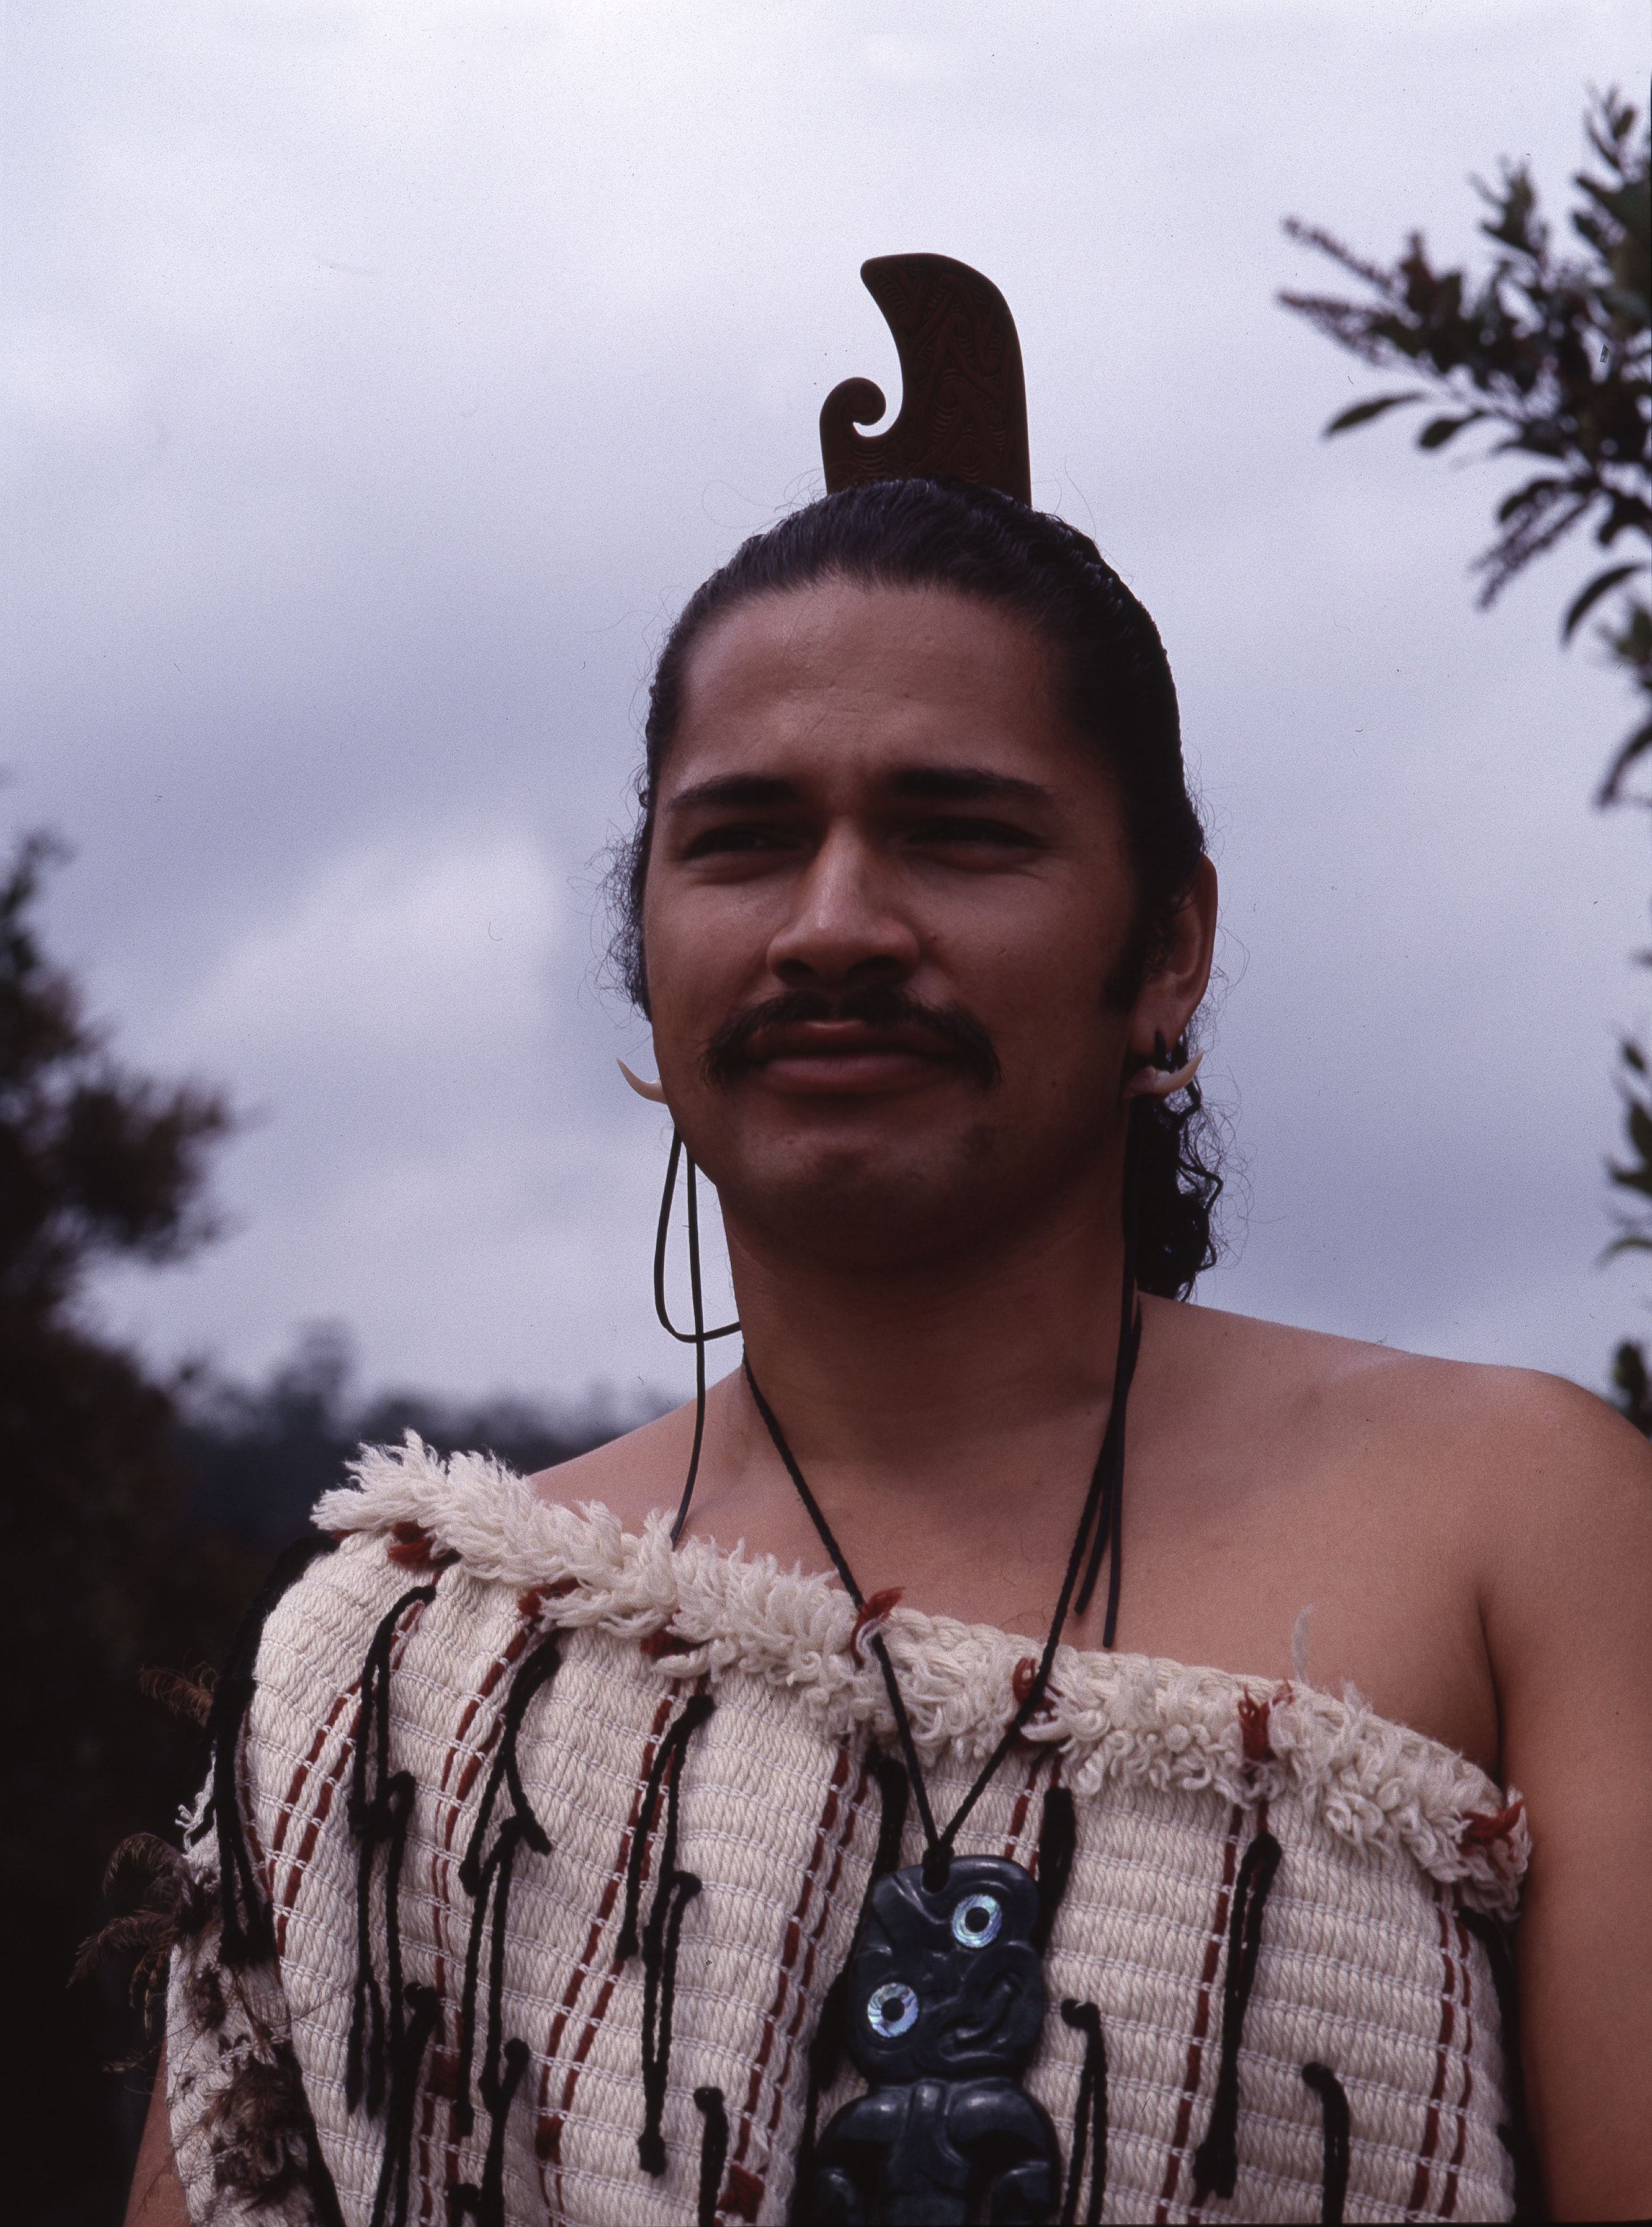 A Maori man wearing traditional dress and a hei-tiki pendant.   1980's   Inv. #: 55425243 © Werner Forman Archive